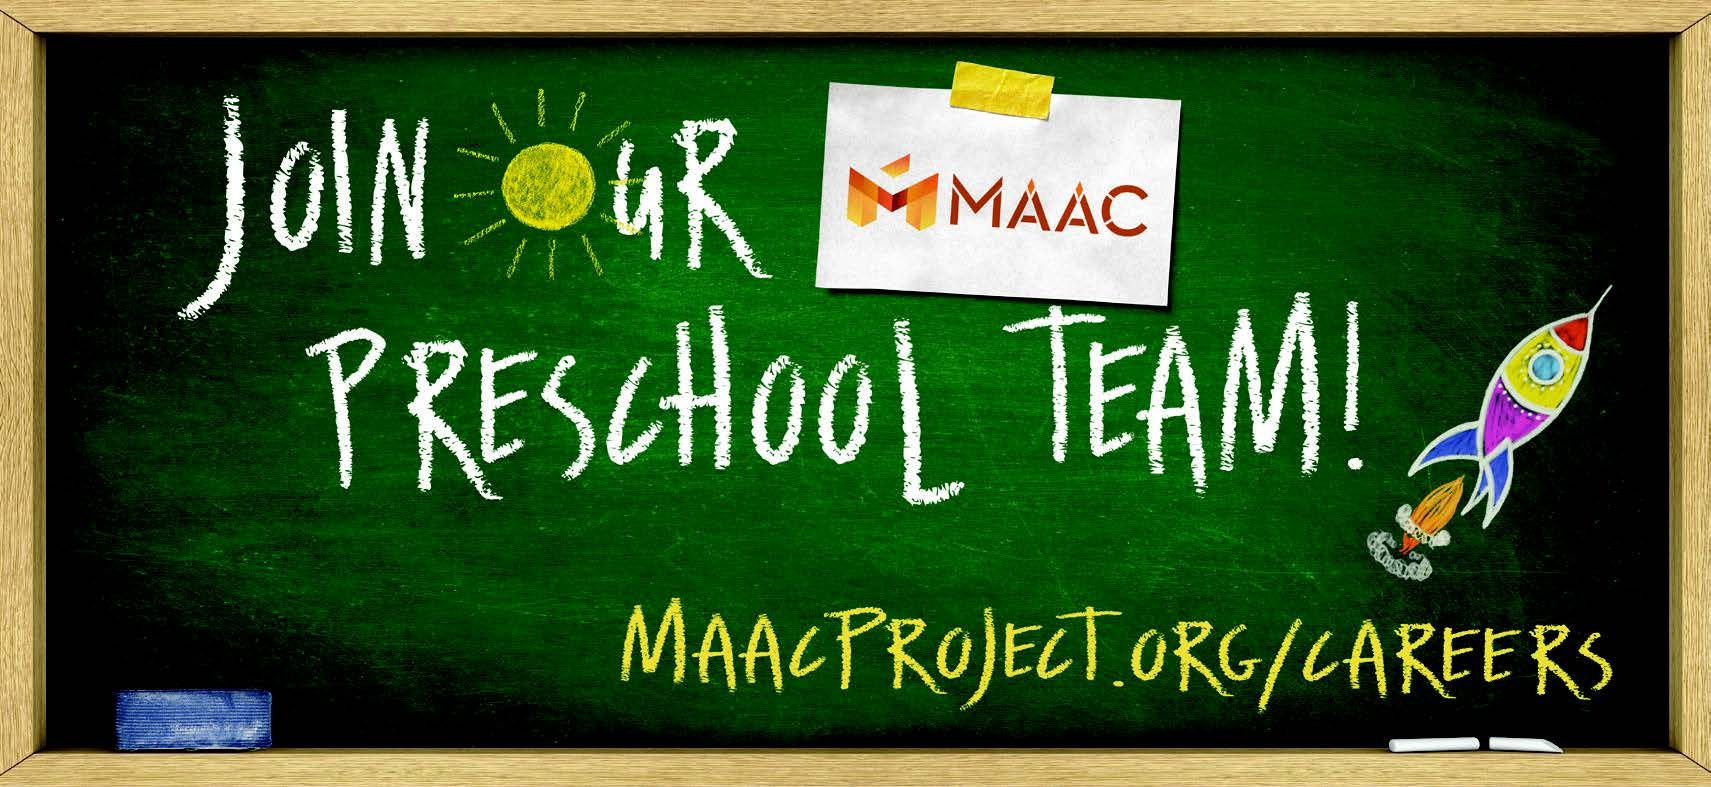 MAAC-Join-Our-Preschool-Team